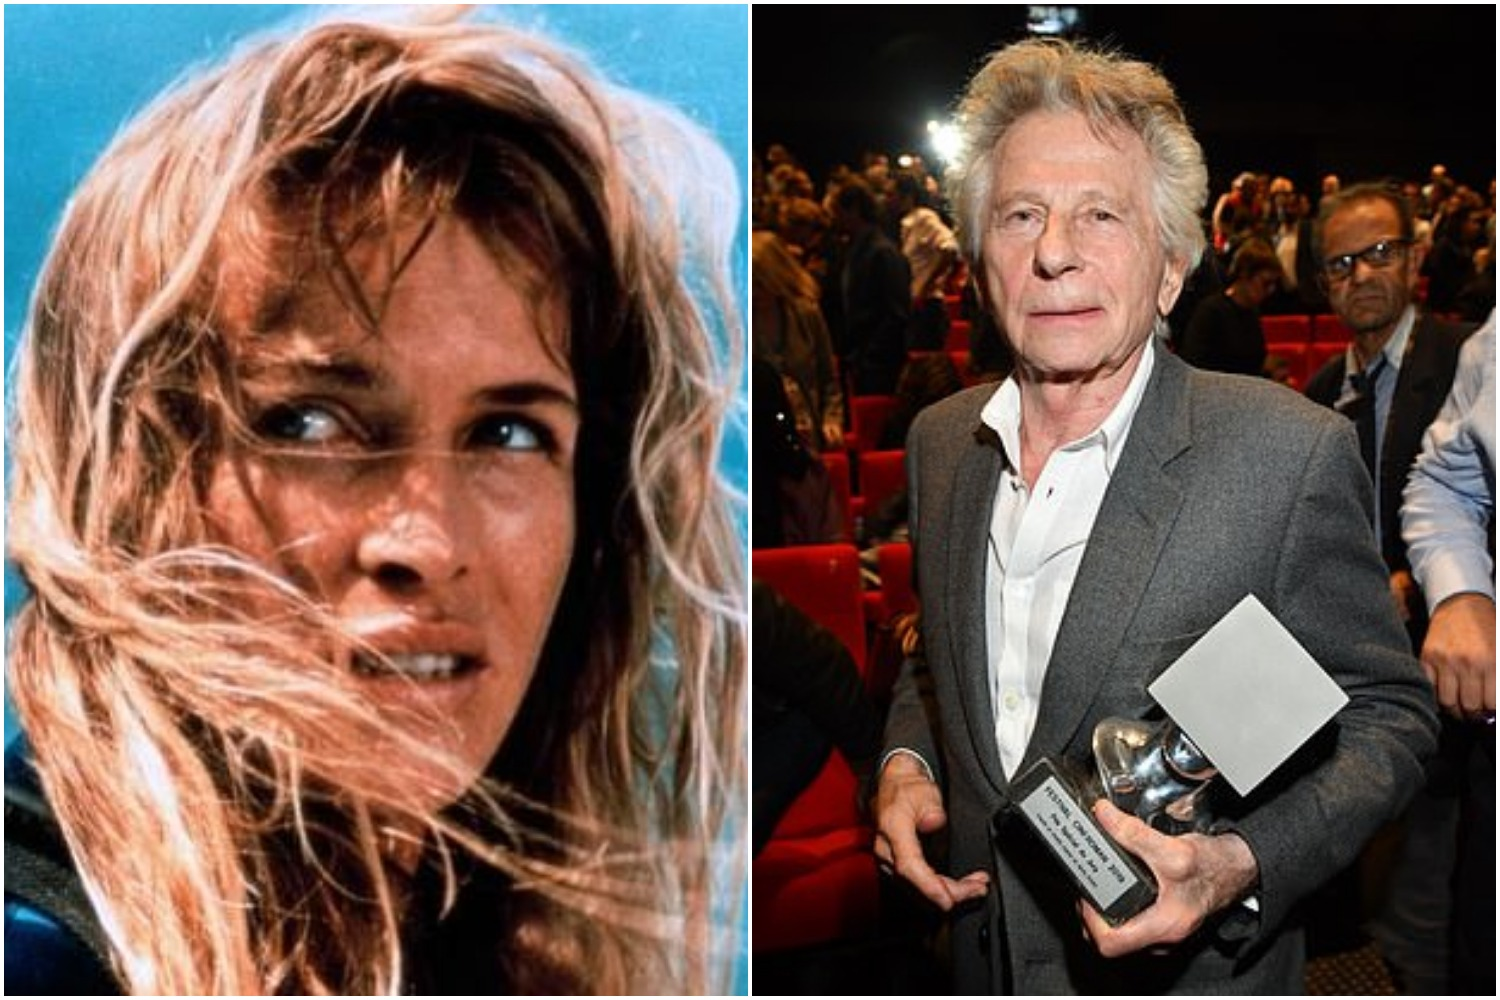 French actress Valentine Monnier accuses Oscar winning director Roman Polanski of raping her